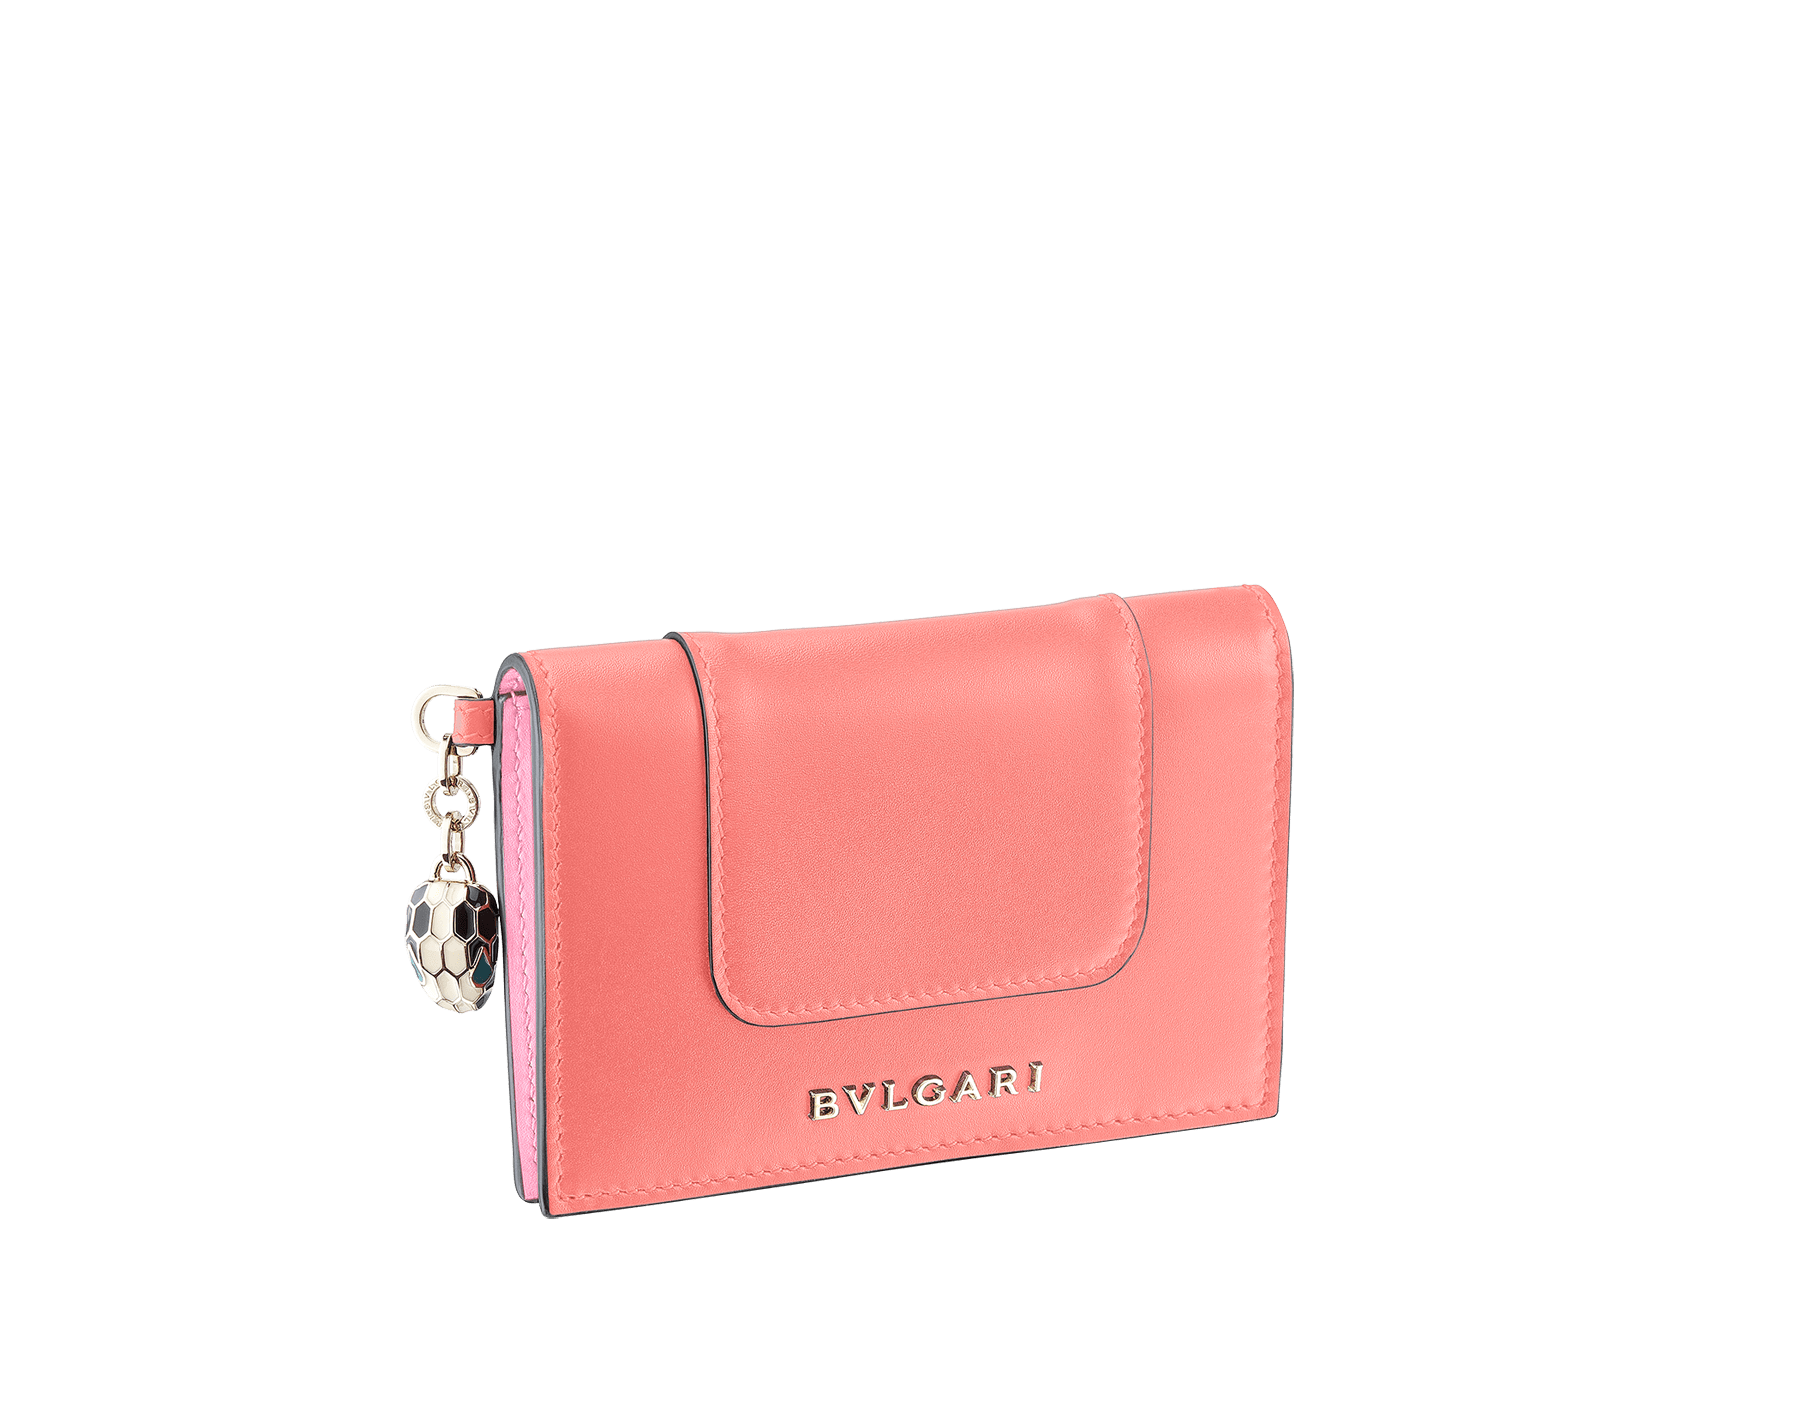 Serpenti Forever folded credit card holder in sea star coral calf leather. Iconic snakehead charm in black and white enamel, with green malachite enamel eyes. SEA-CC-HOLDER-FOLD-CLd image 1